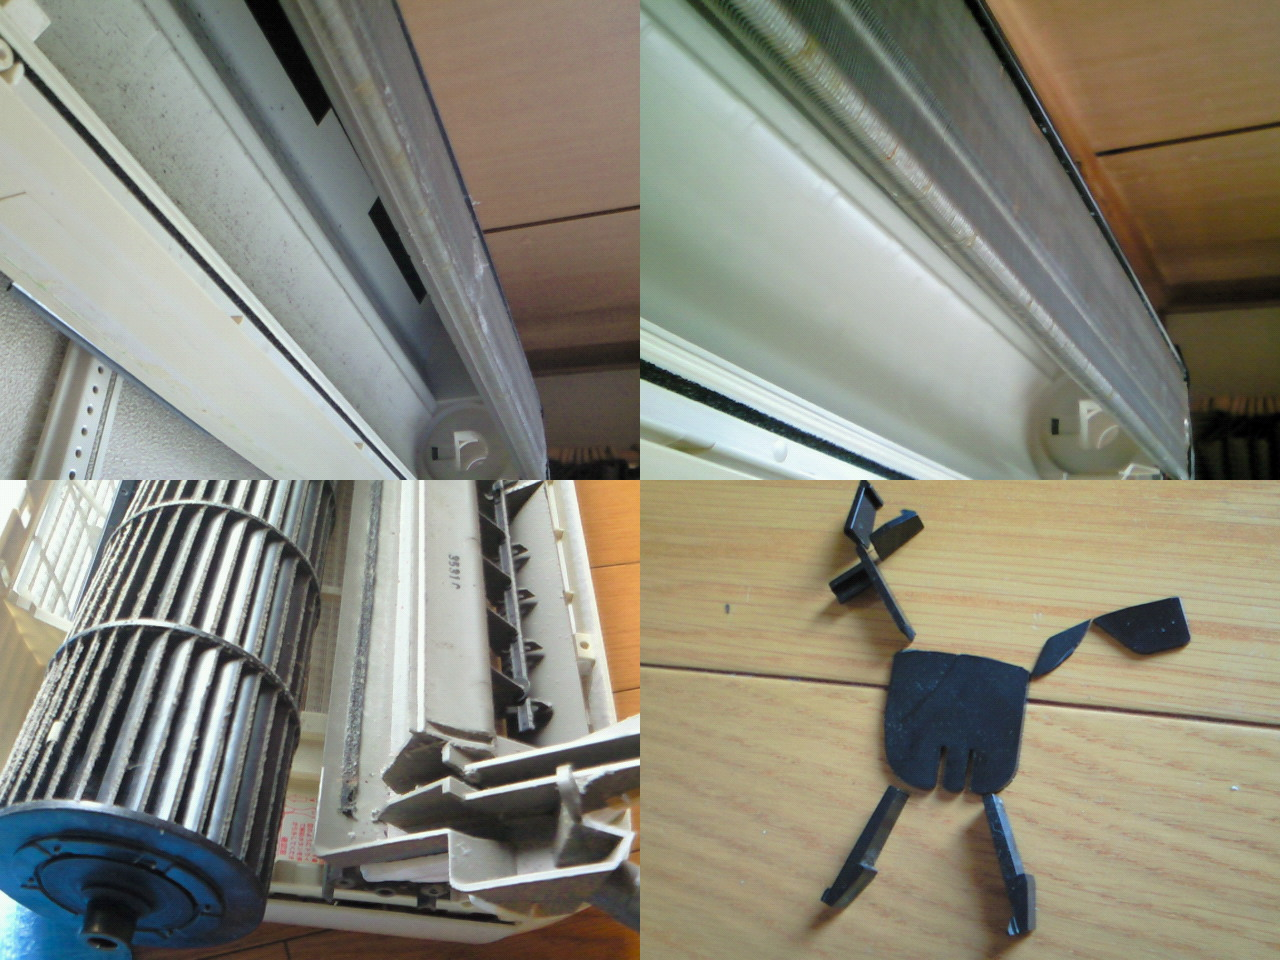 http://ajras.net/images/110614-aircon3.jpg